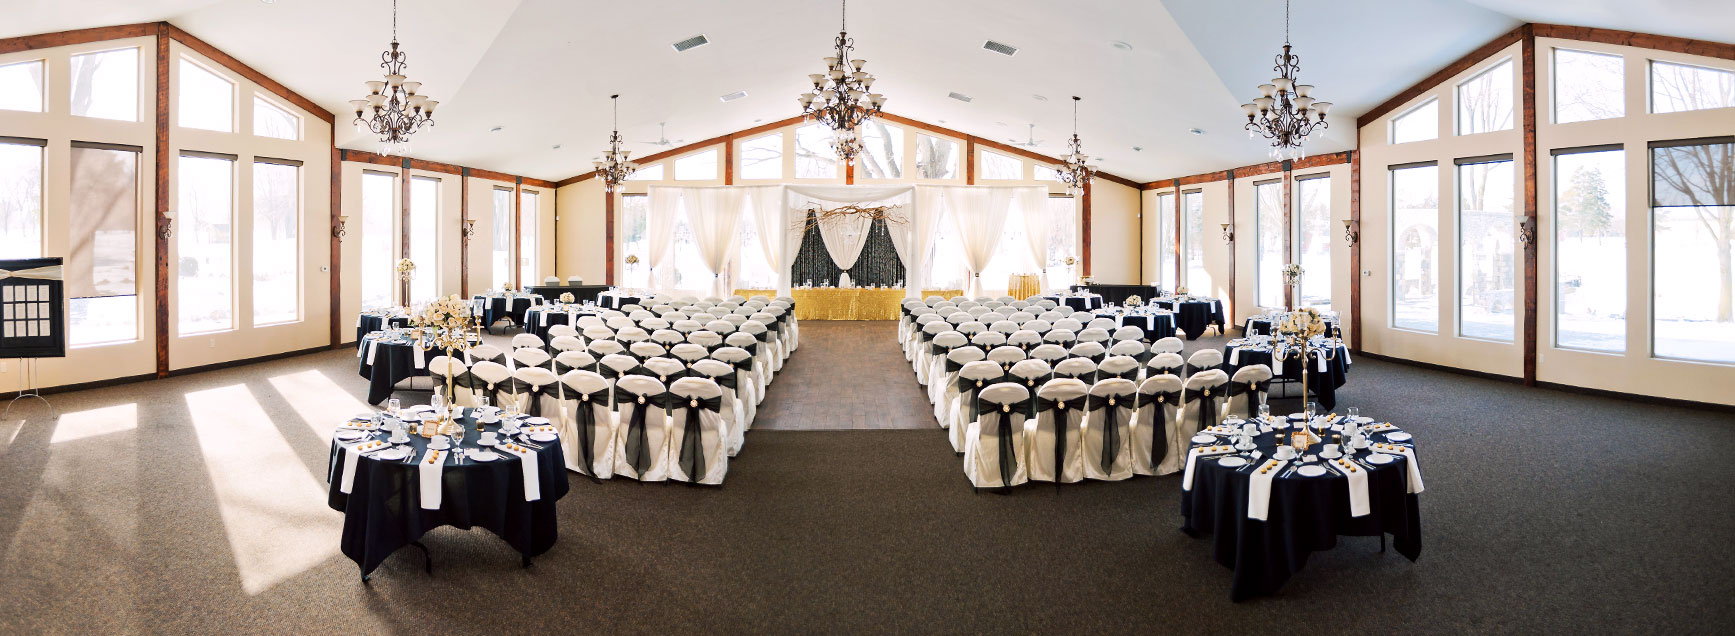 Events Centre – Weddings, Corporate Events & More